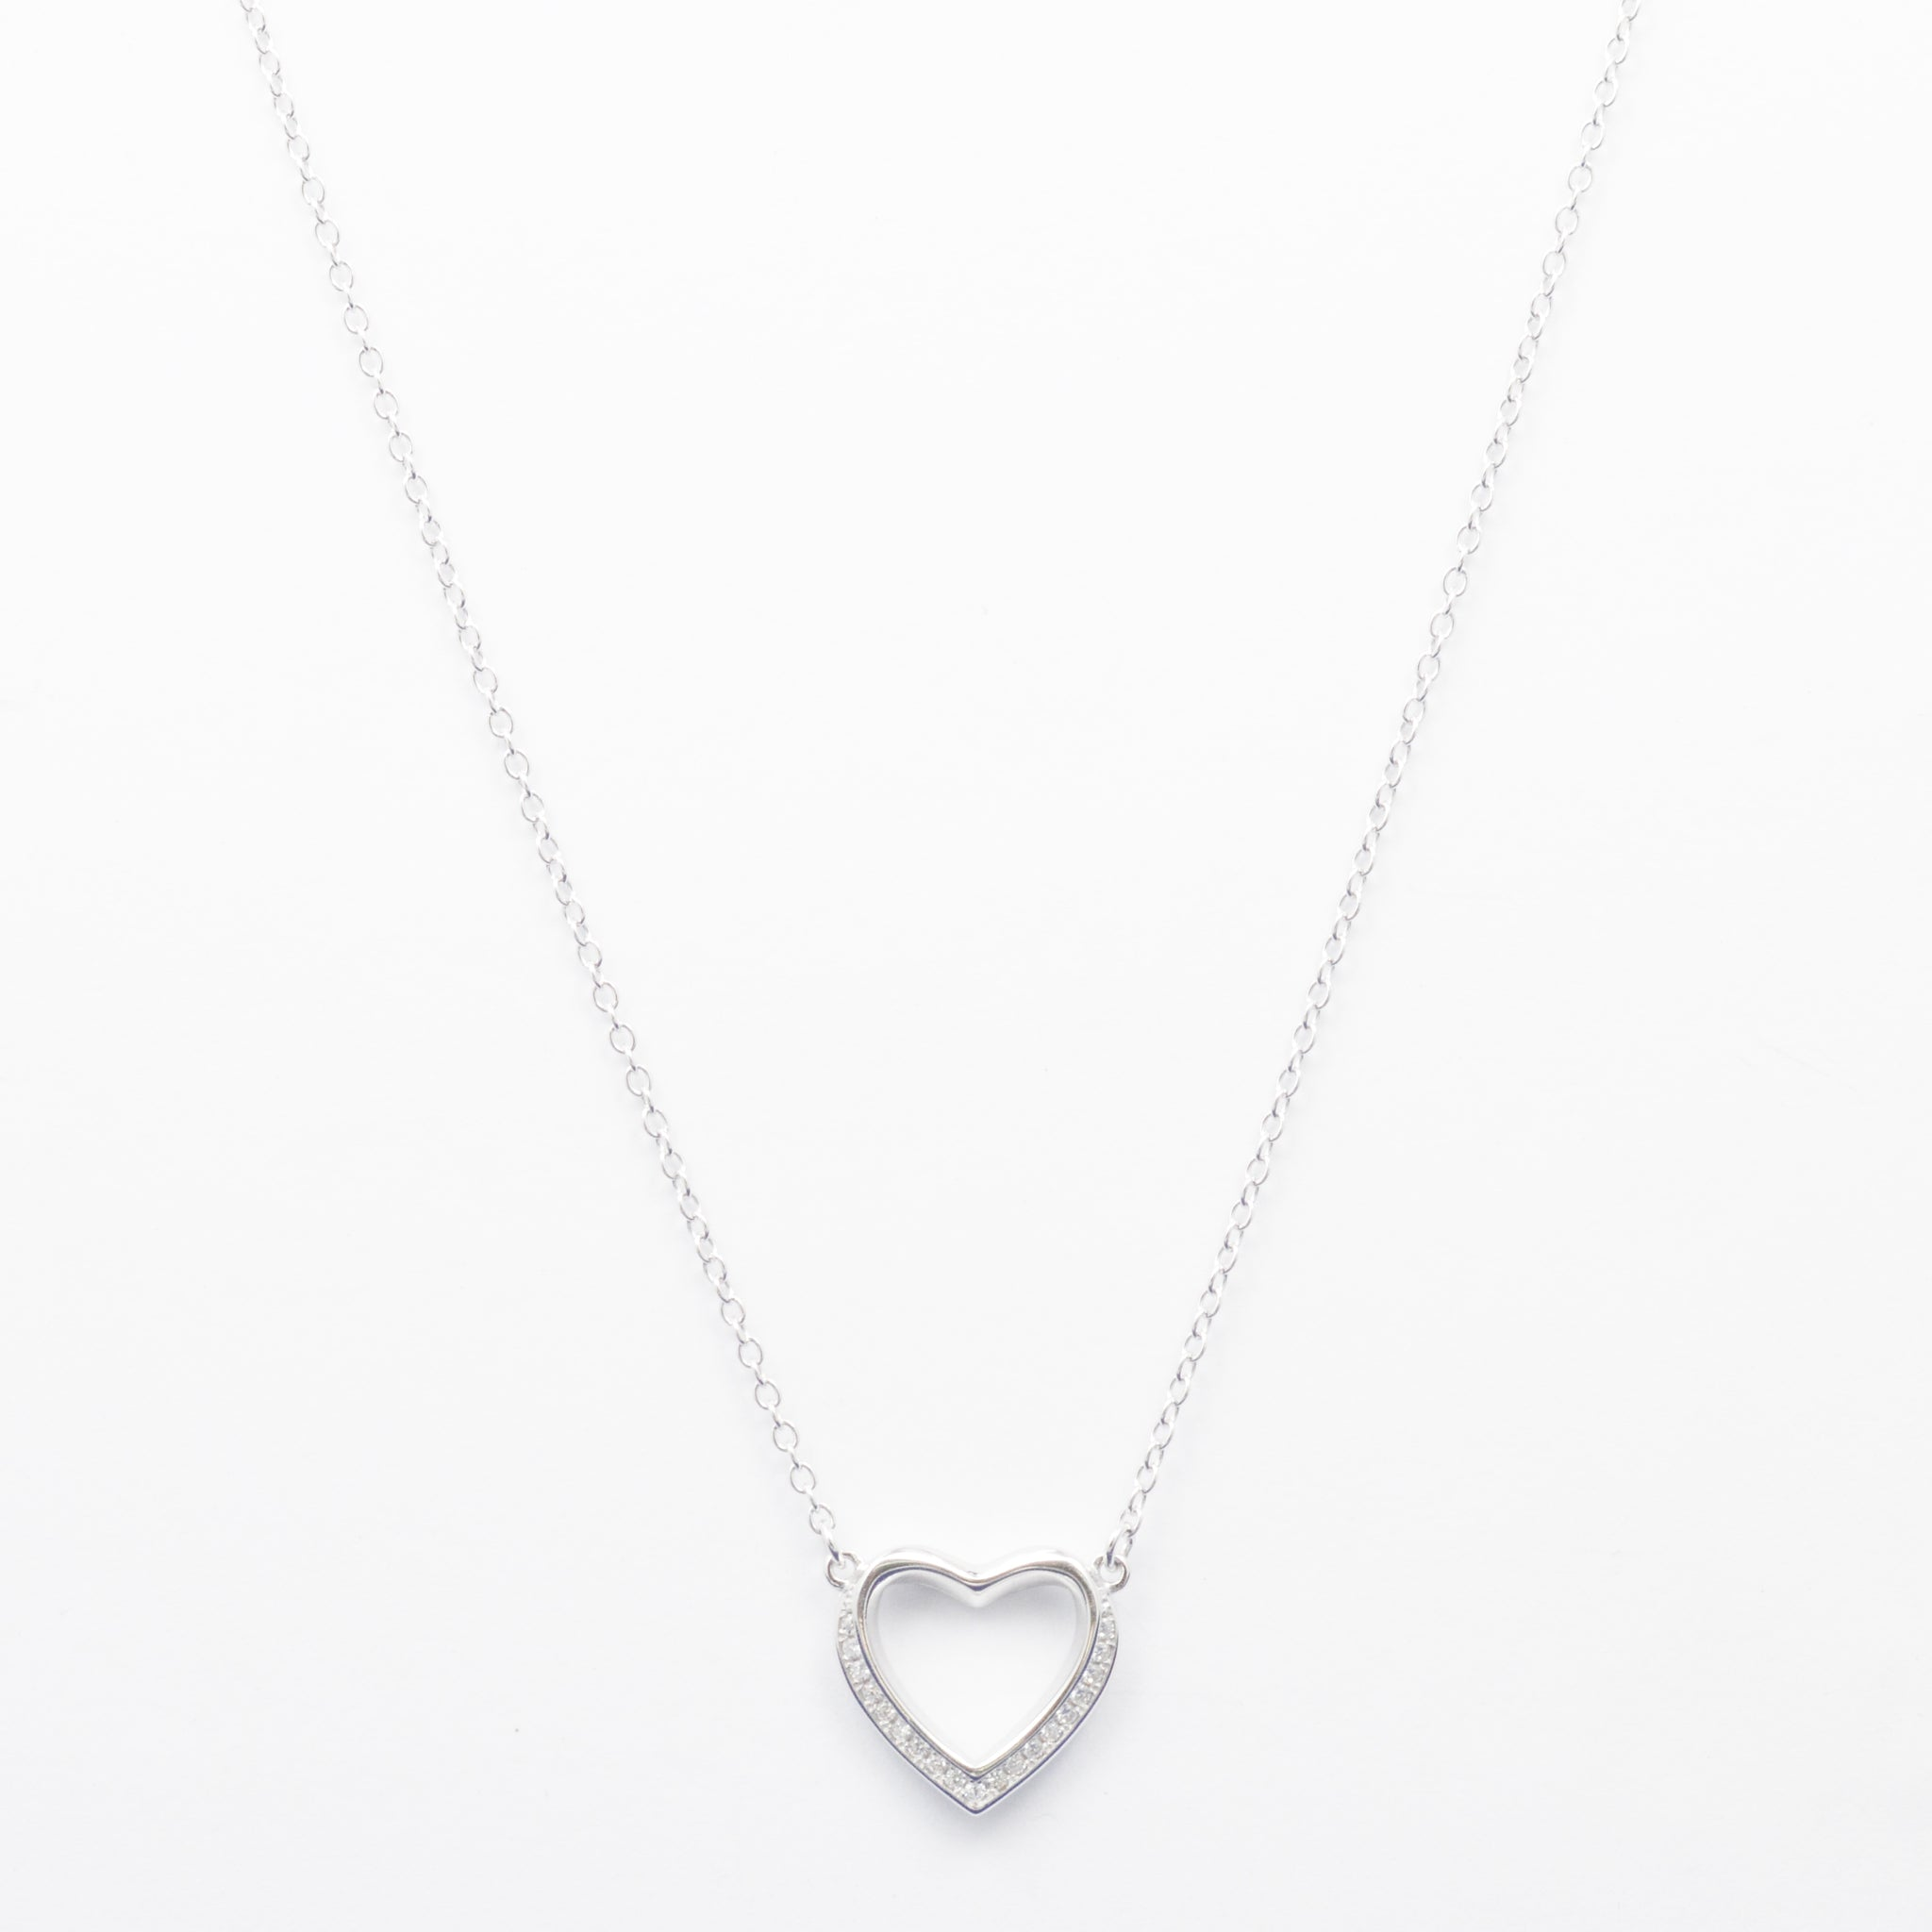 Classy Heart Silver Necklace